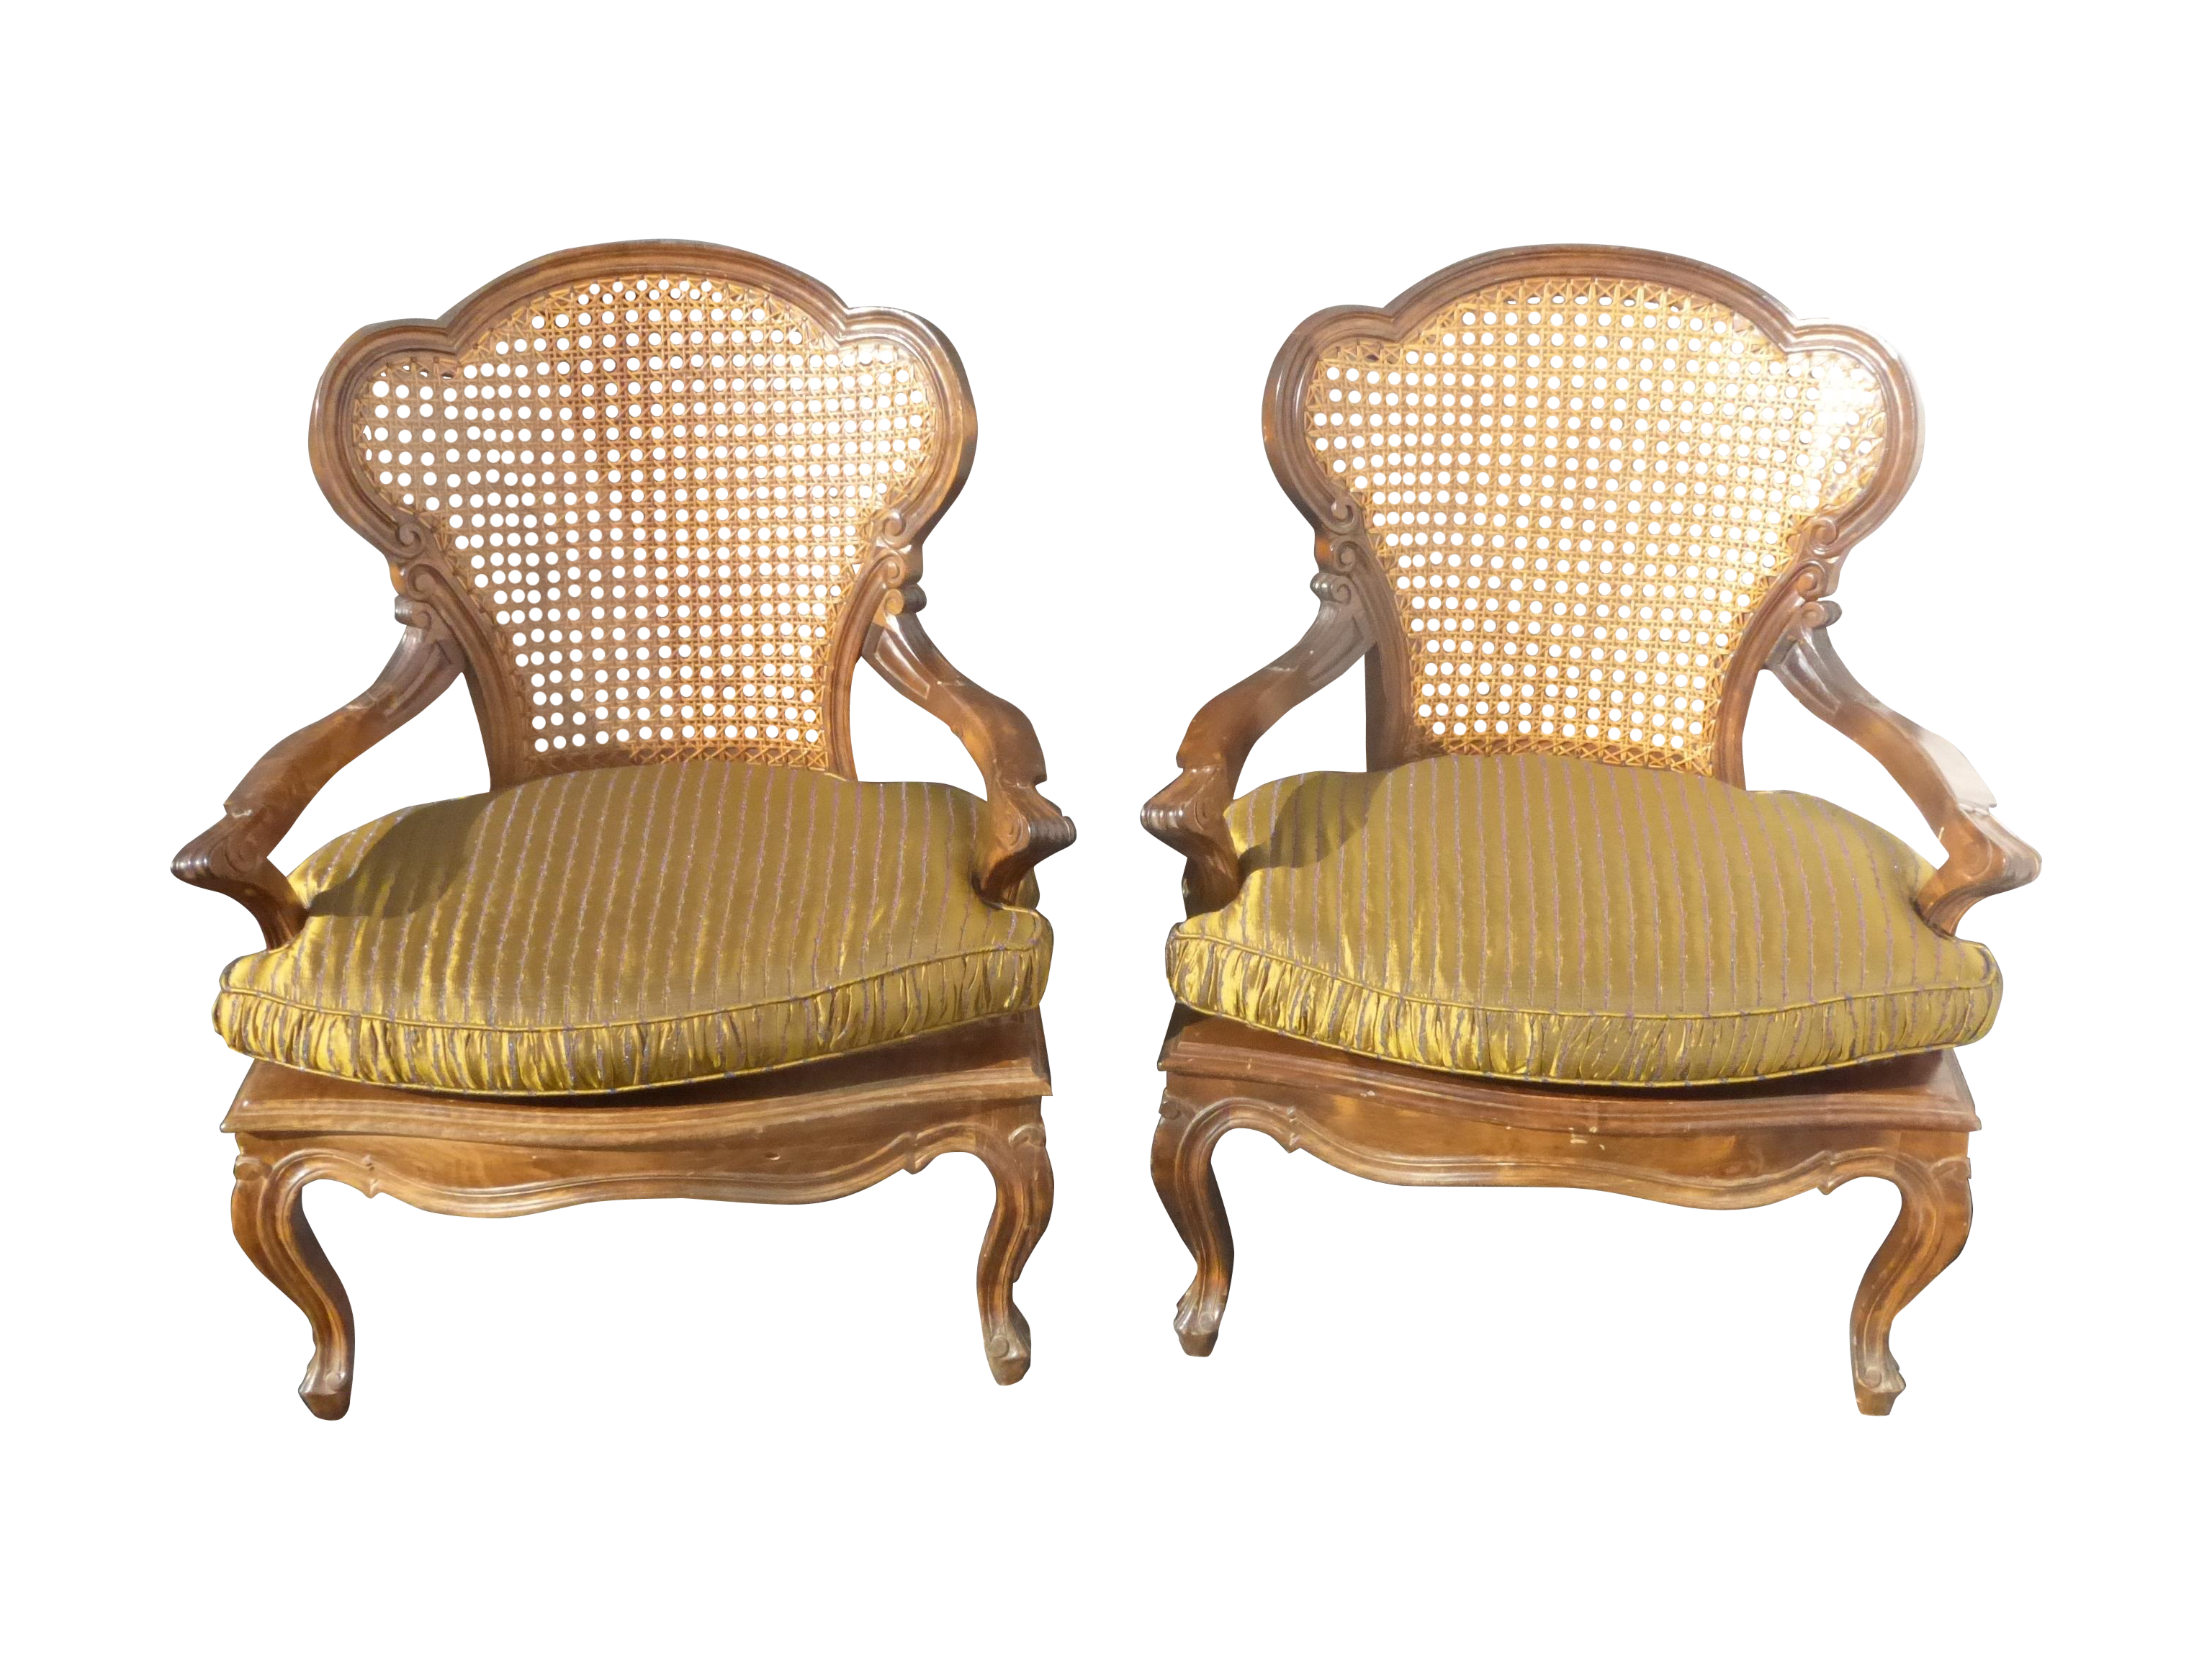 Cane chairs with cushions - Image Of French Provincial Cane Chairs Silk Cushions 2